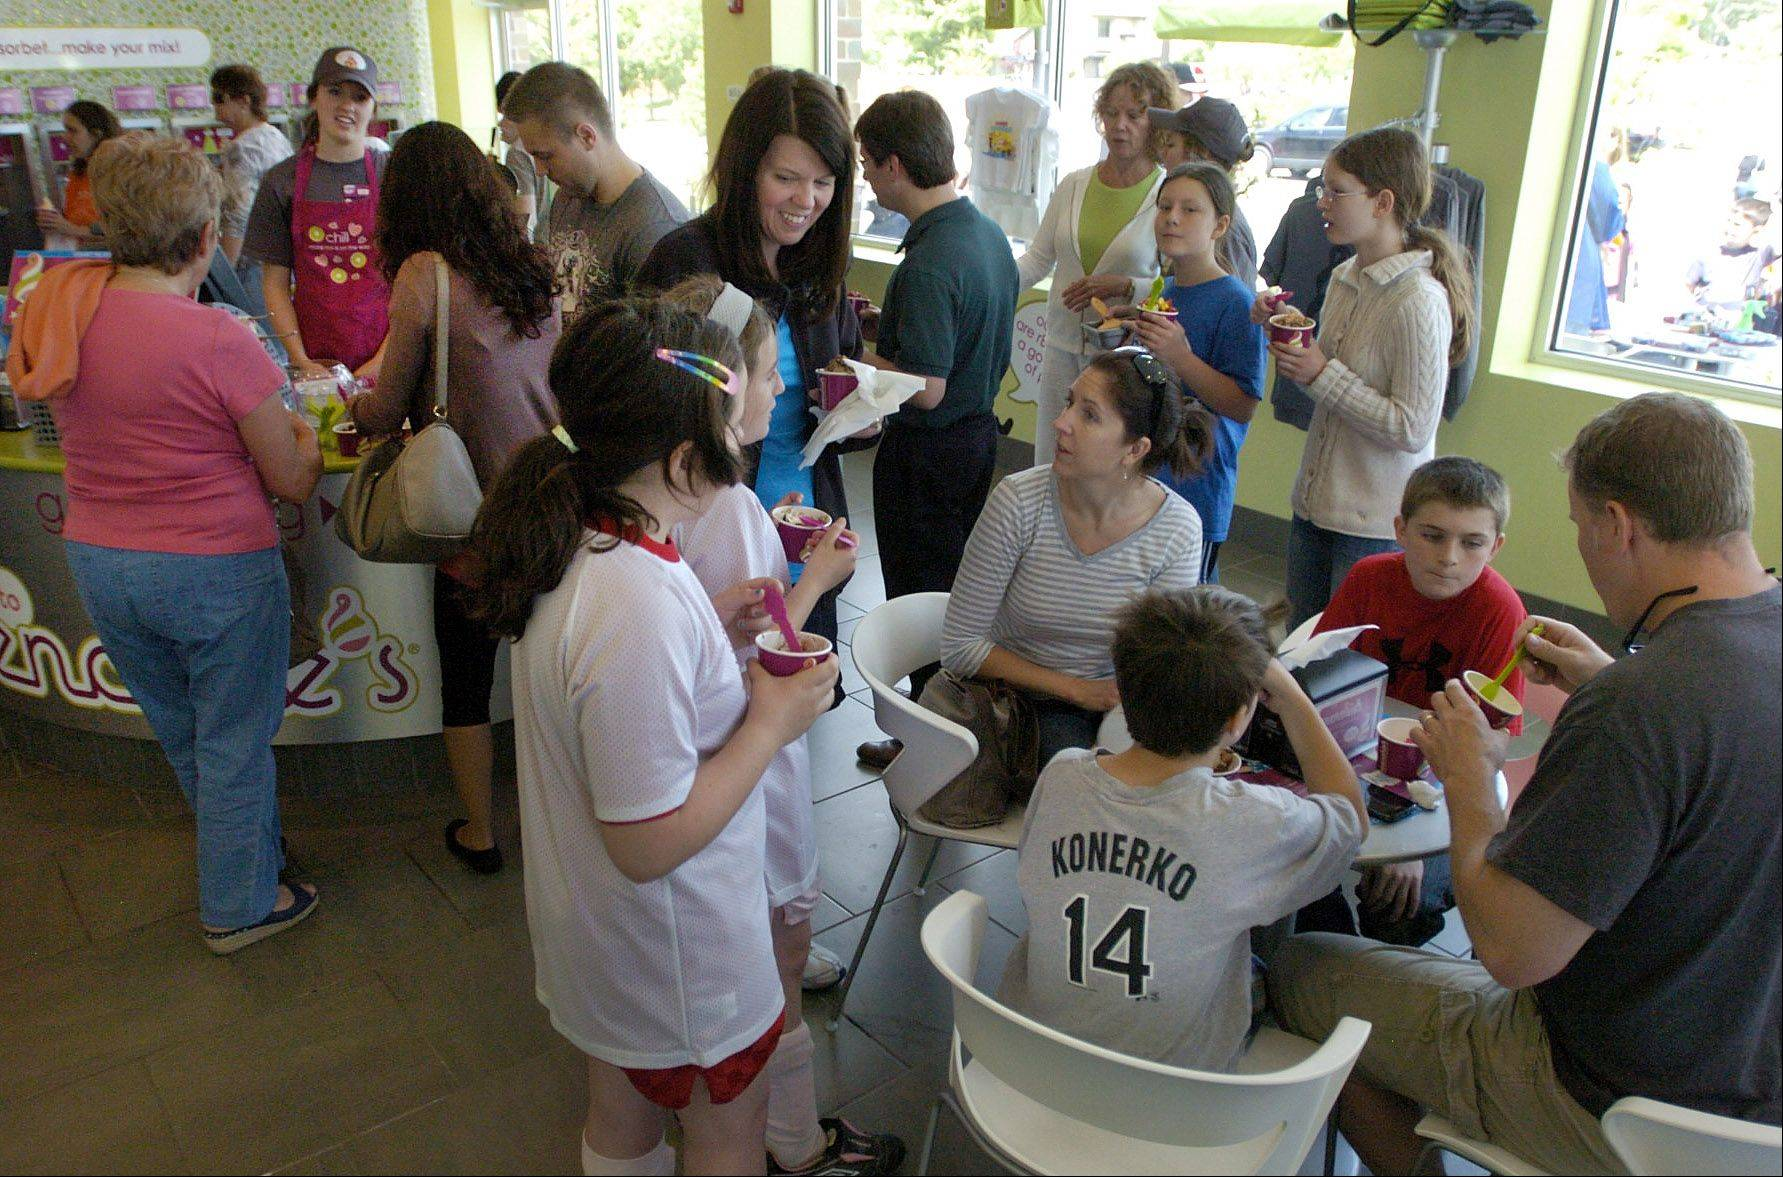 Free frozen yogurt is given to customers at the grand opening of the new Menchie's frozen yogurt in Mount Prospect earlier this month.